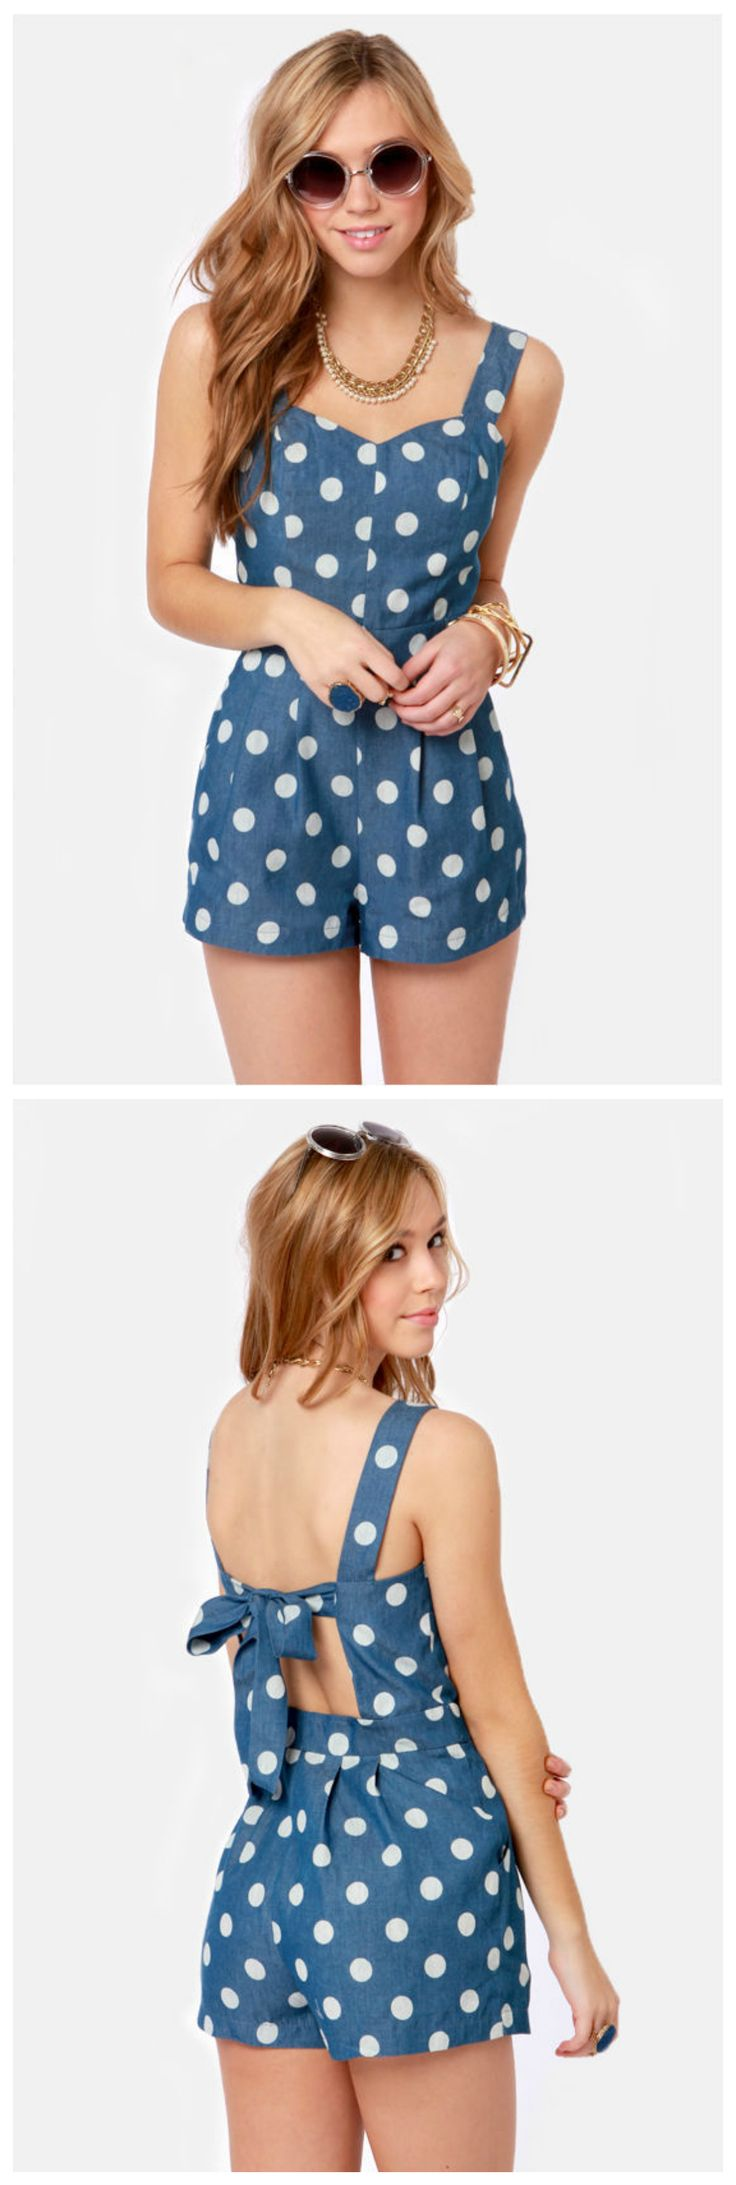 Dot of the Bay Blue Polka Dot Romper via lulus.com